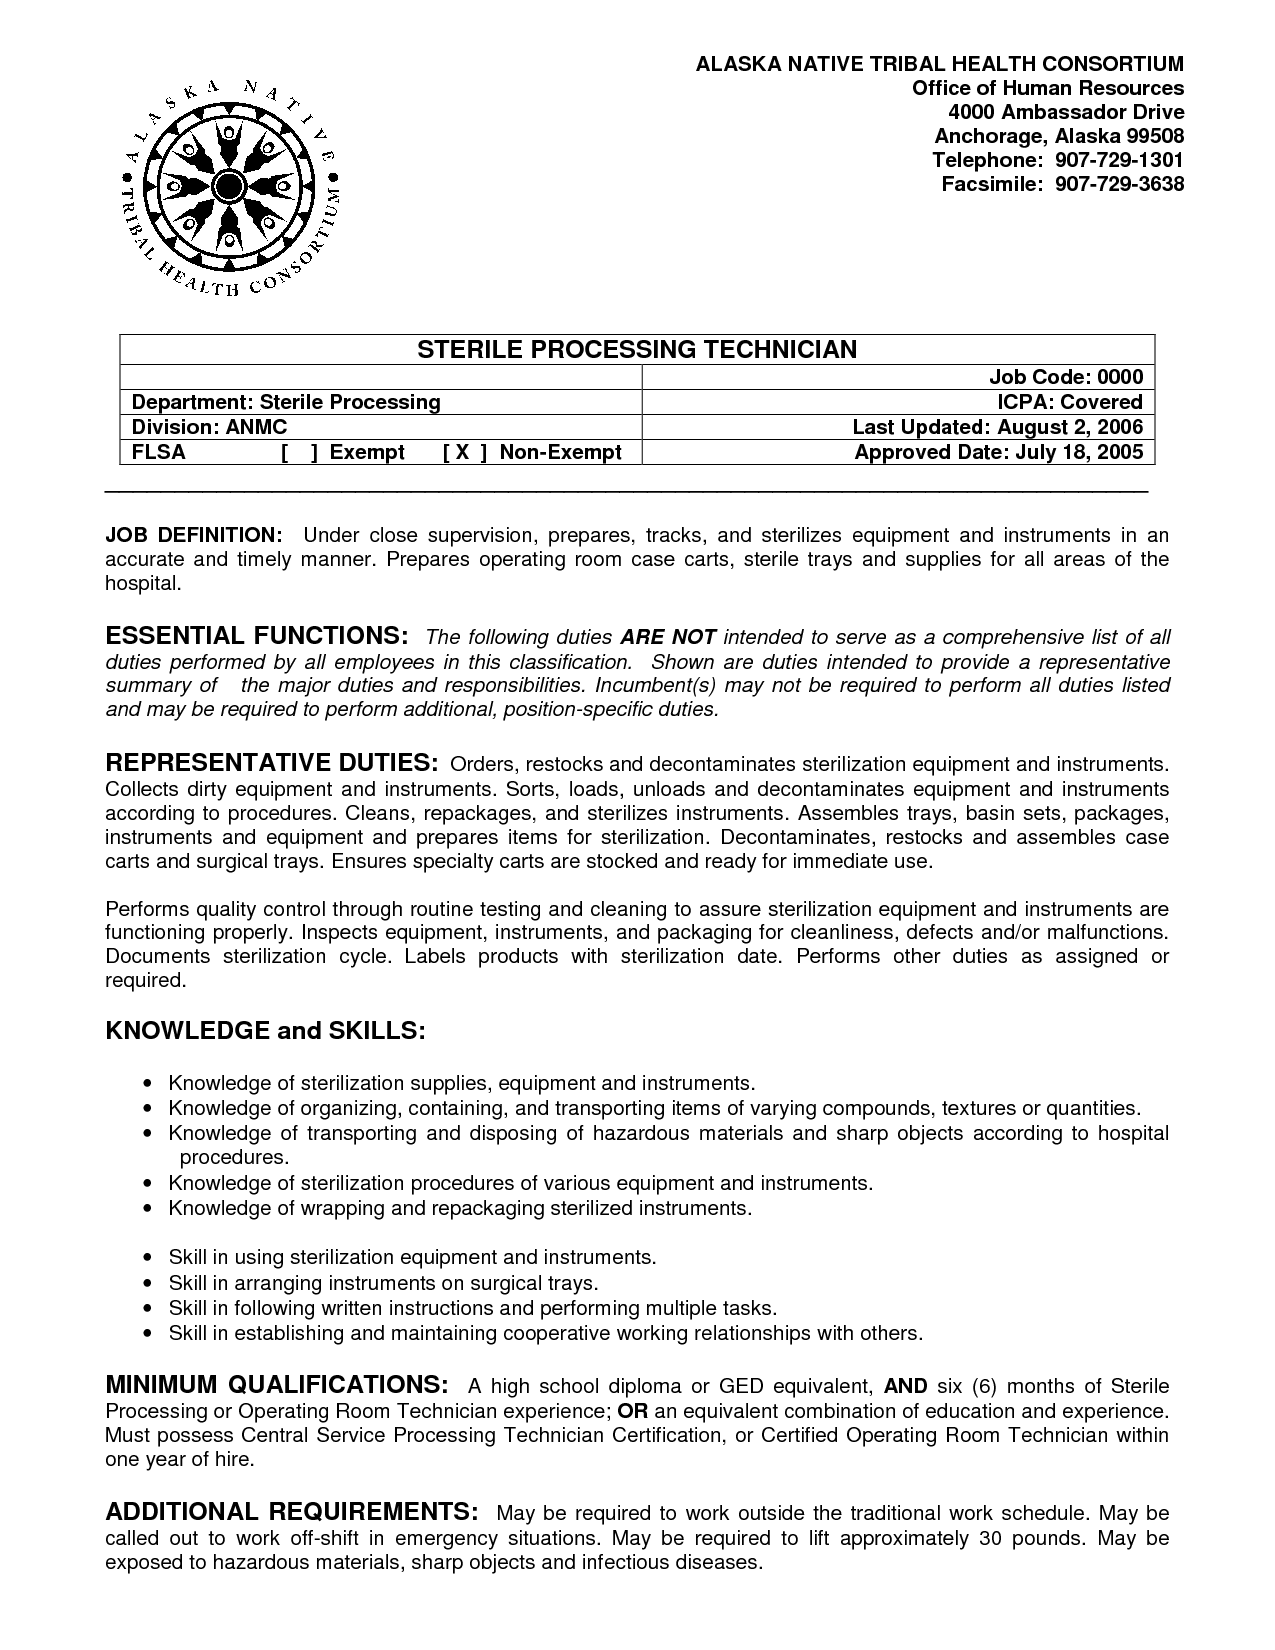 Resume Definition Job Avionics Mechanic Cover Letter Jianbochen Manager Sample Resume